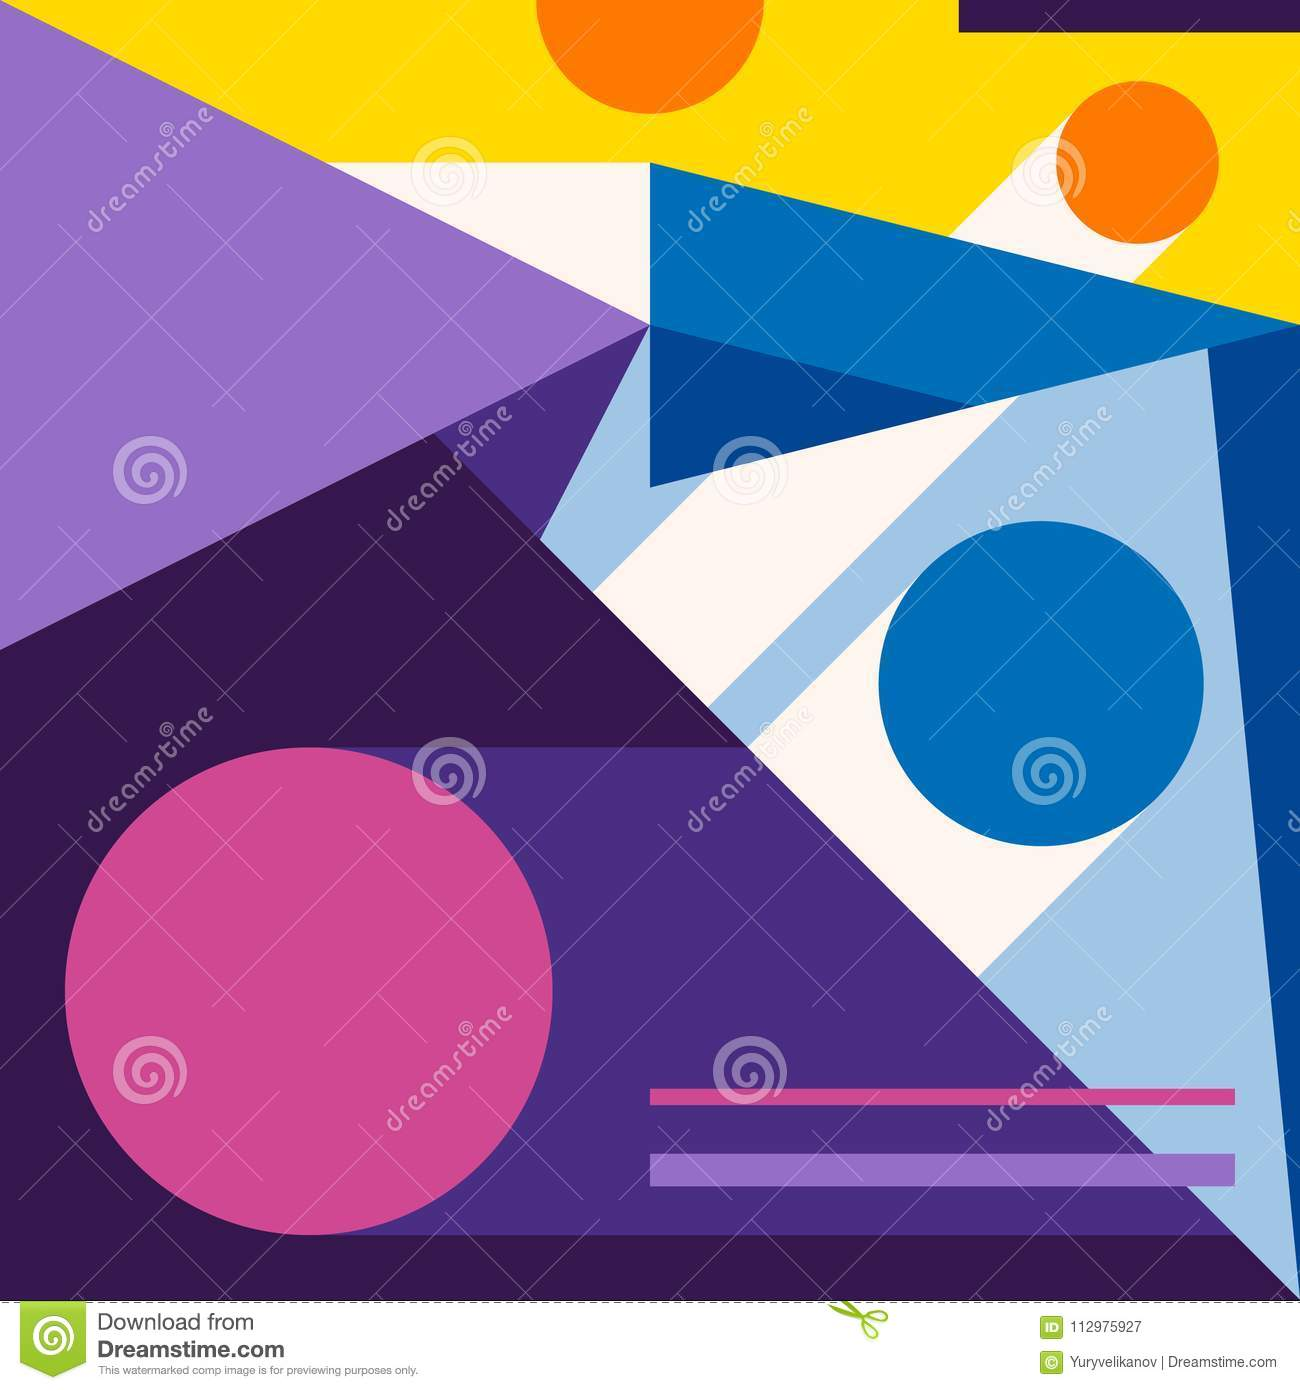 Abstract modern geometric background. Composition 10